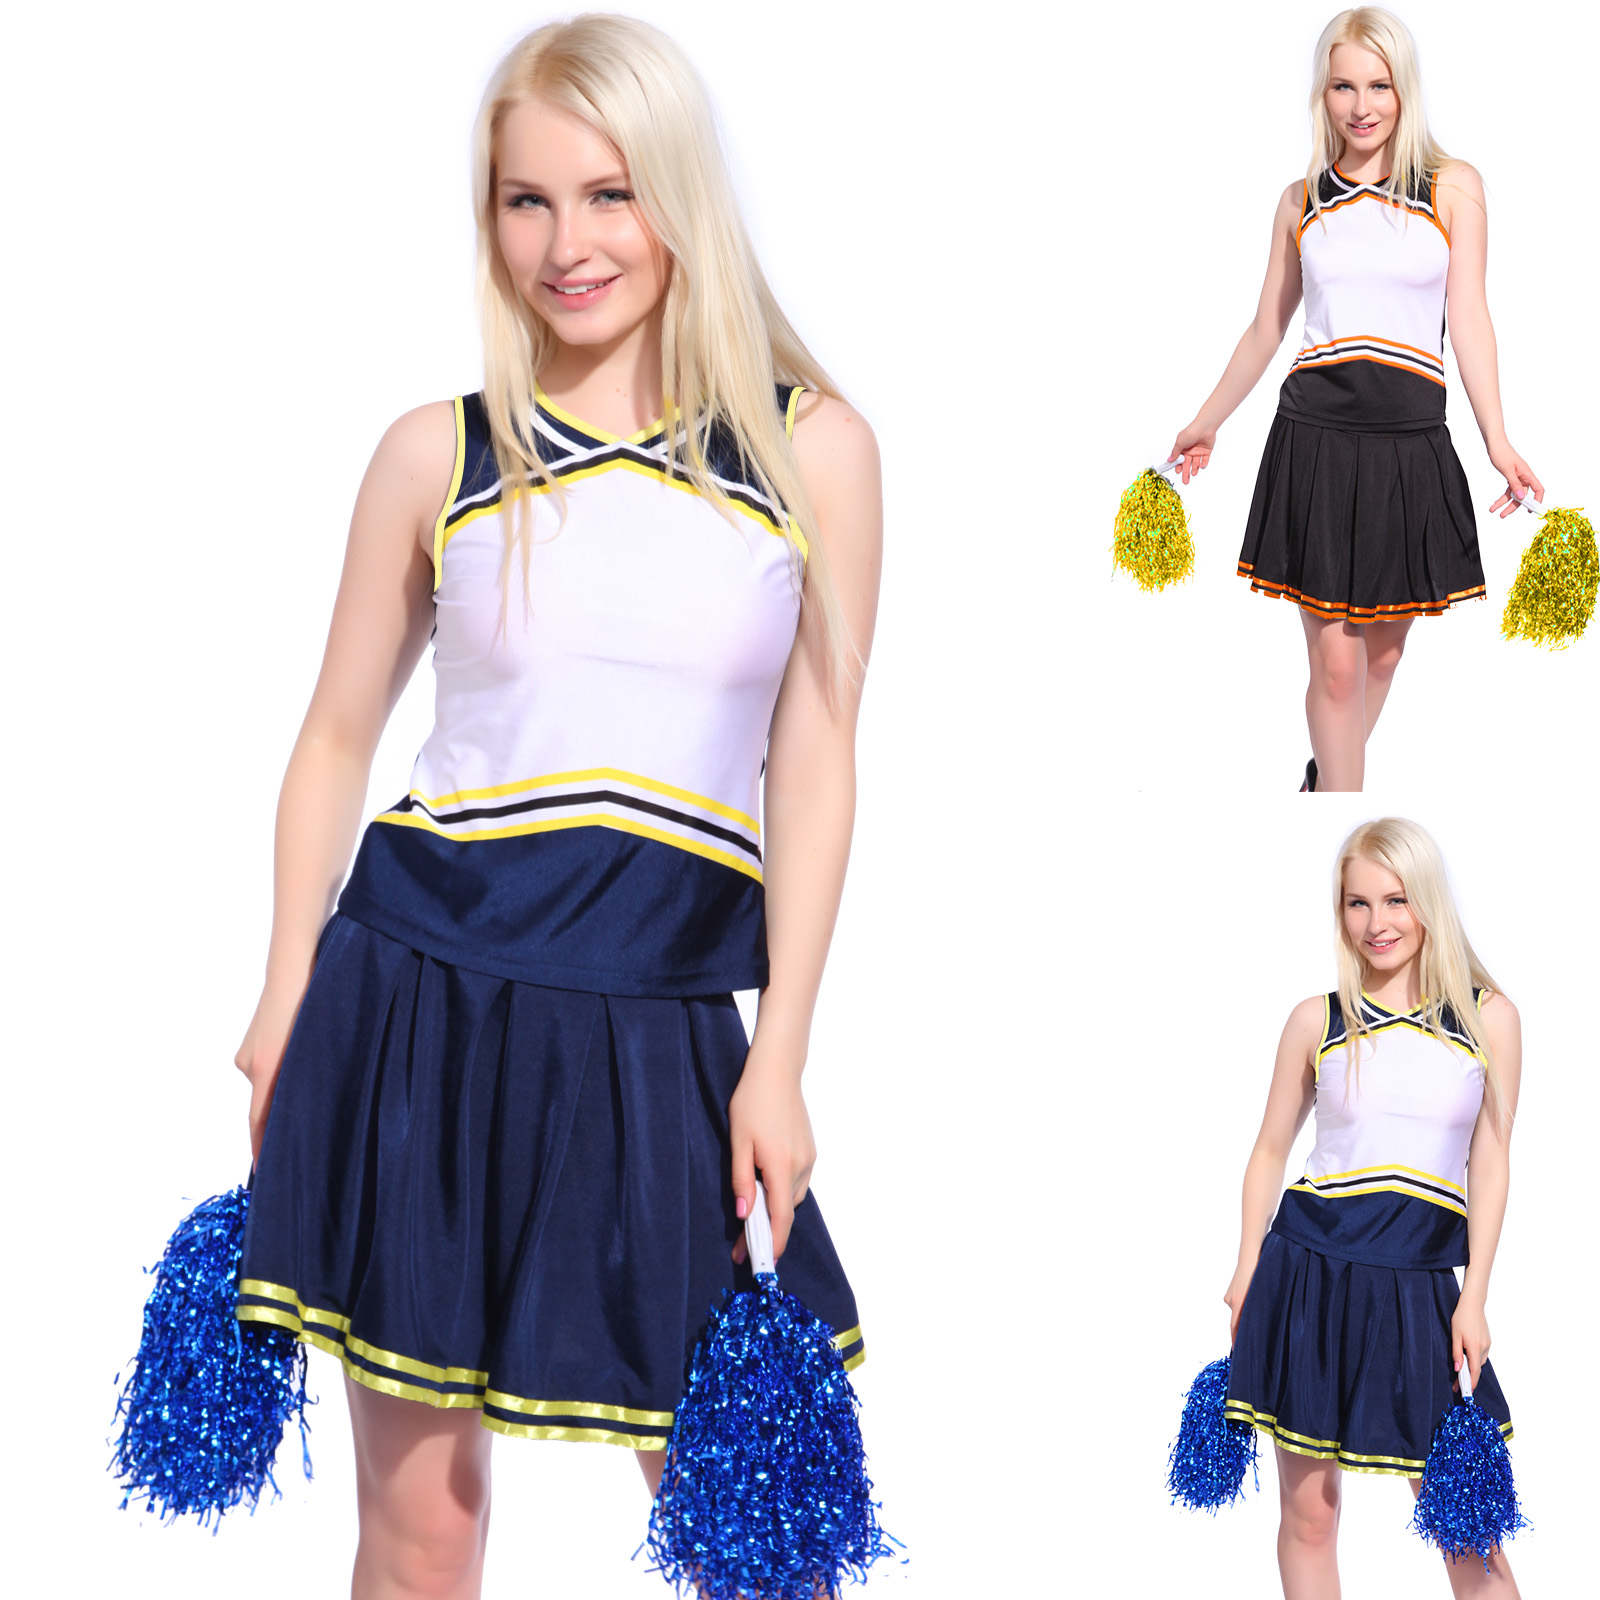 Ladies Girls Blank Printed Cheerleader Uniform Cheerleading Costume DIY Outfit | eBay